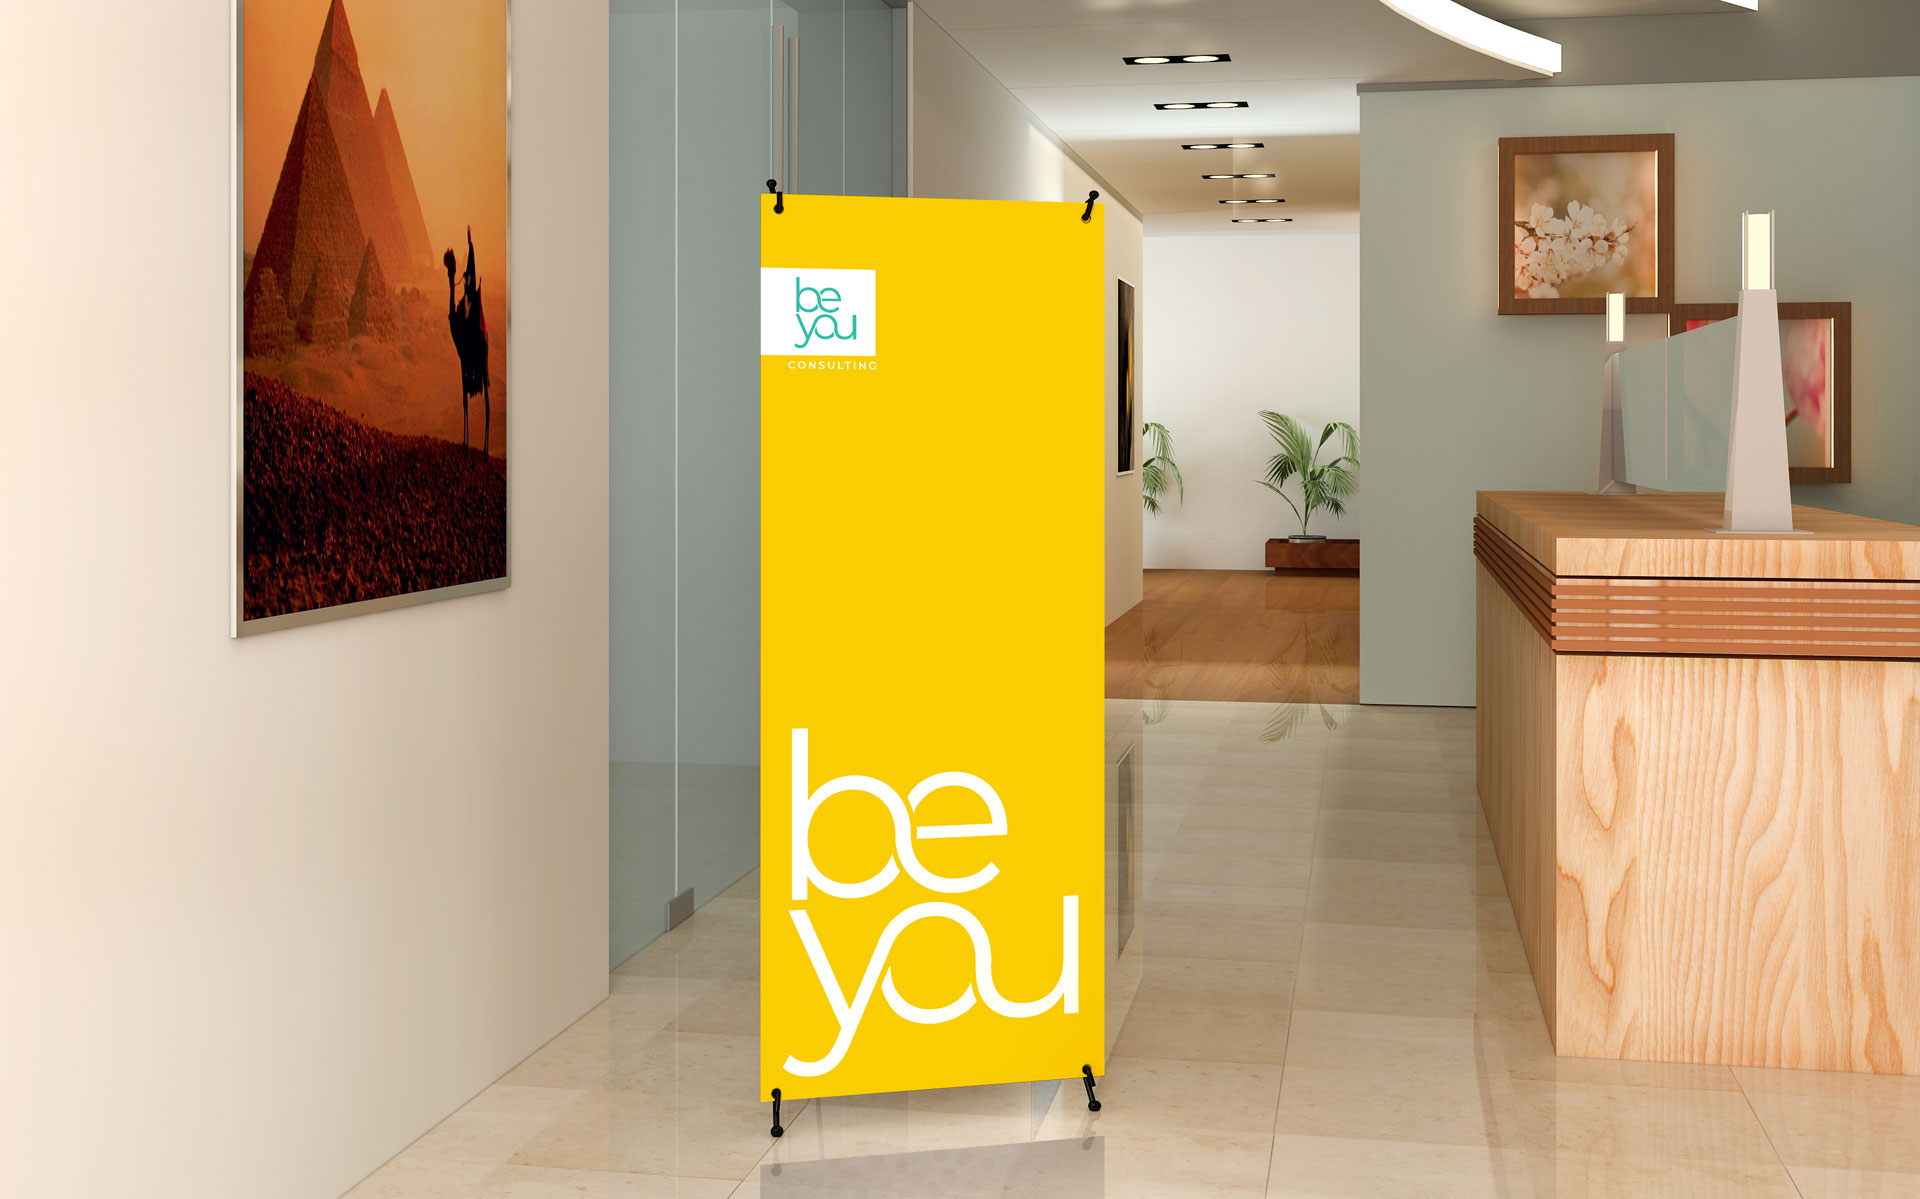 Be You Consulting logo, branding & marketing items designed by Amy at Yellow Sunday